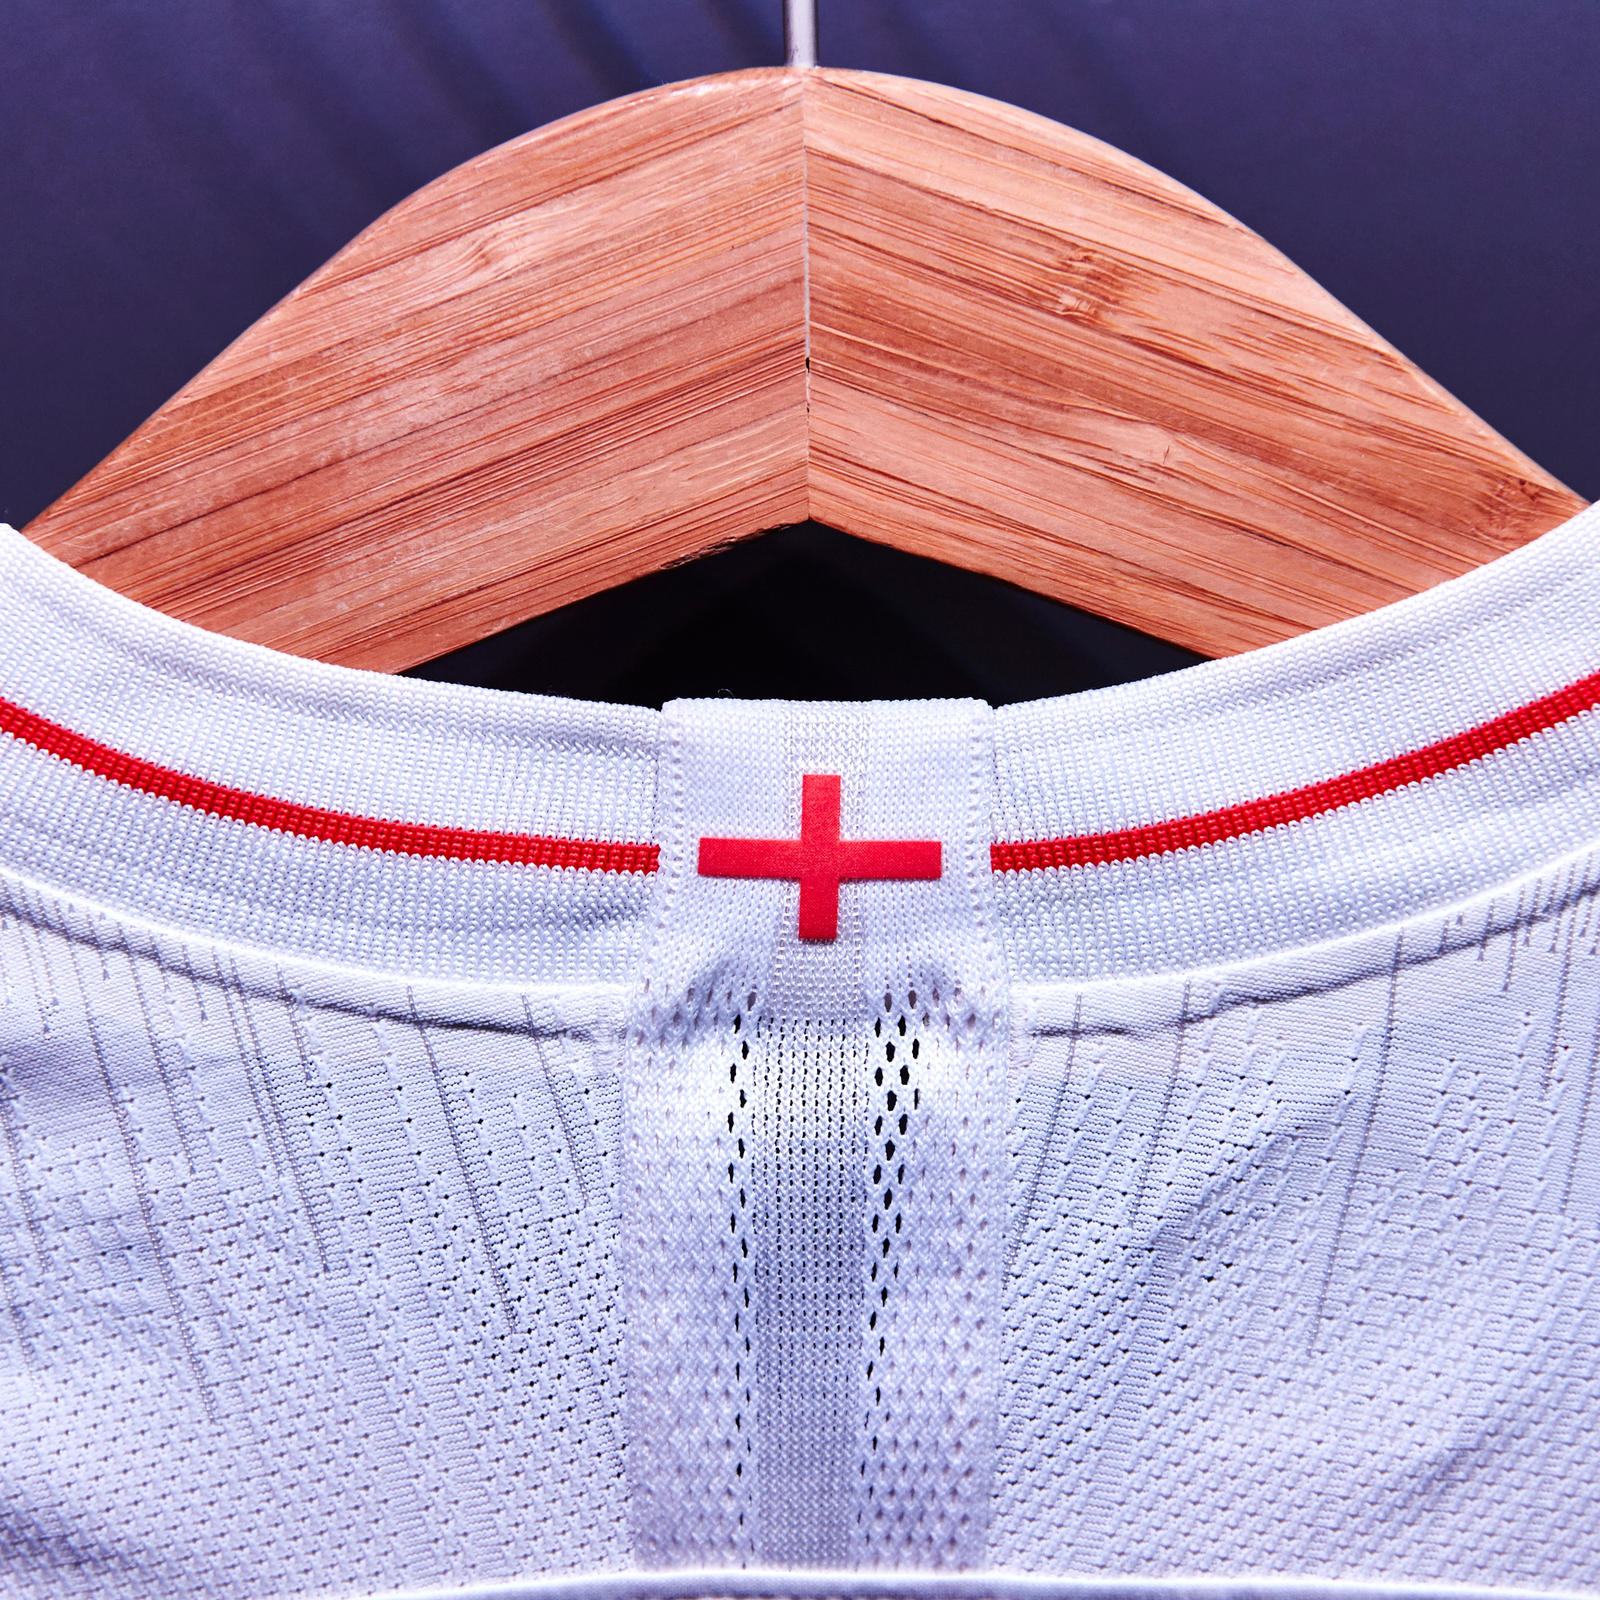 Nike-News-Football-Soccer-England-National-Team-Kit-5_square_1600.JPG